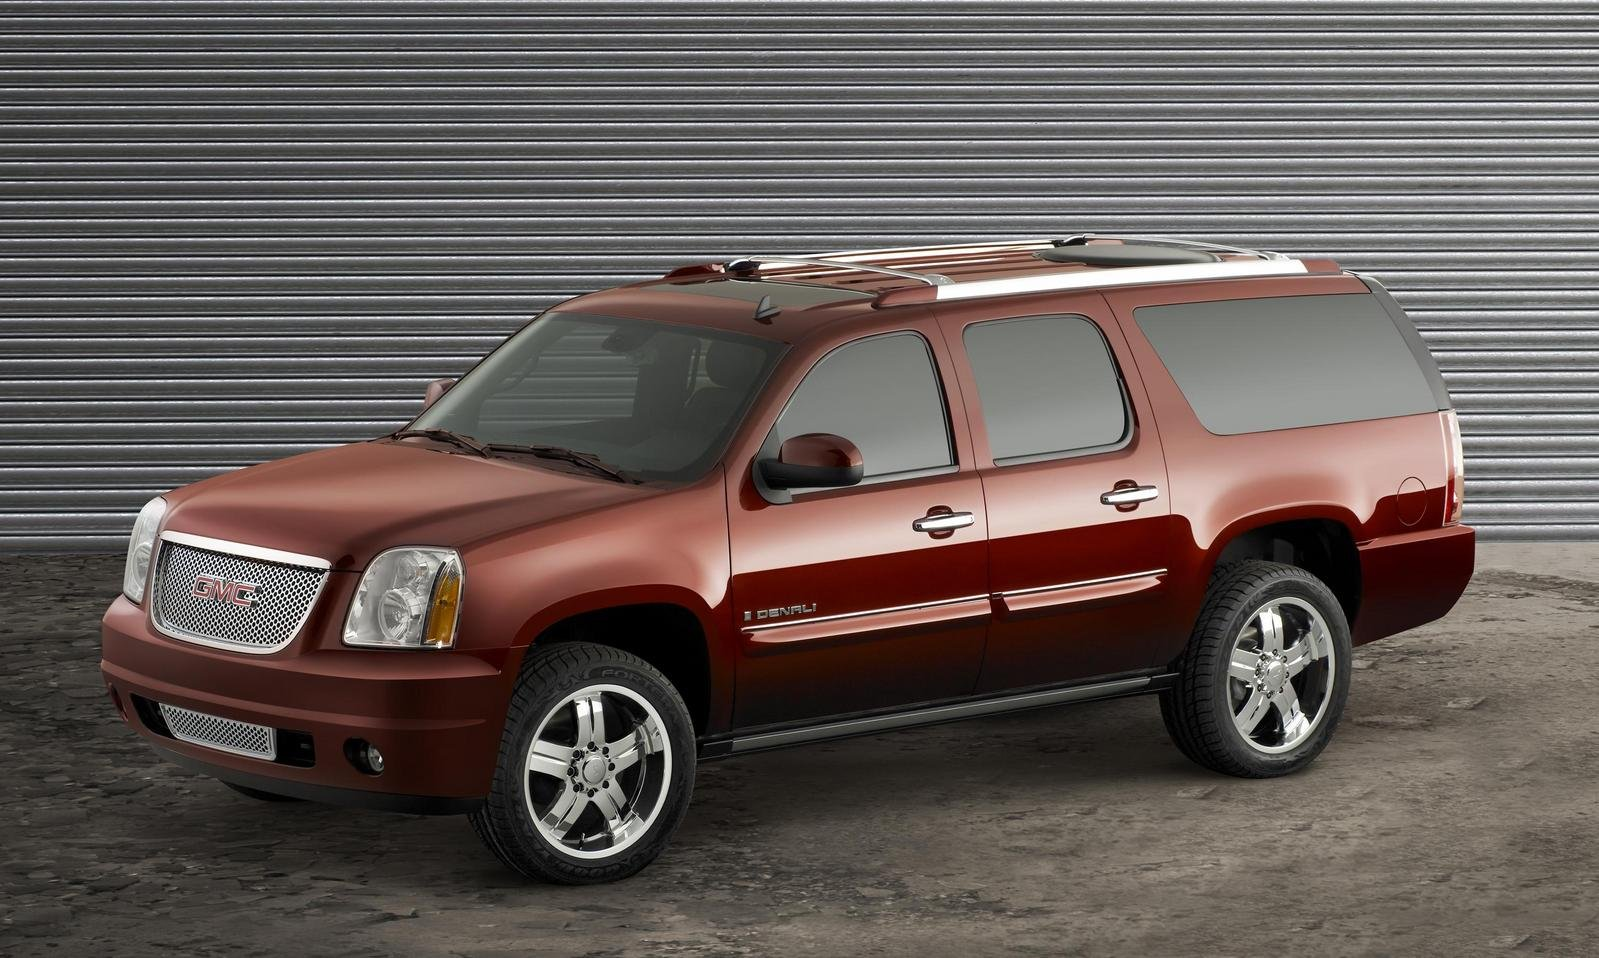 2007 chevy yukon reviews hydrolysis reaction diagram gmc denali xl 2500 big max review top speed